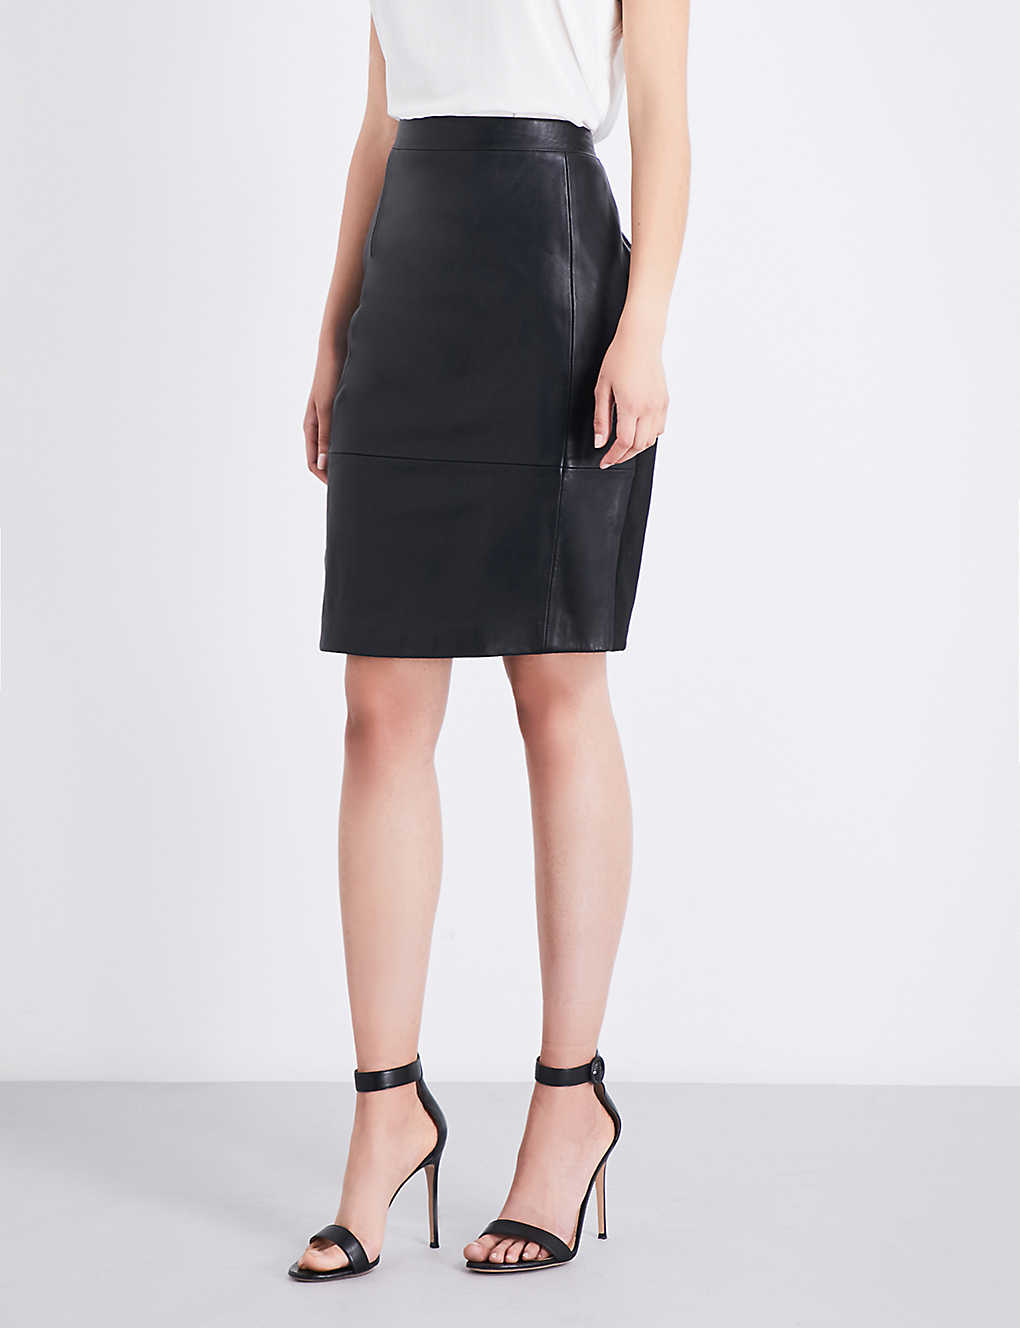 8b41b0ae19 REISS - Avril high-rise leather and ponte skirt | Selfridges.com